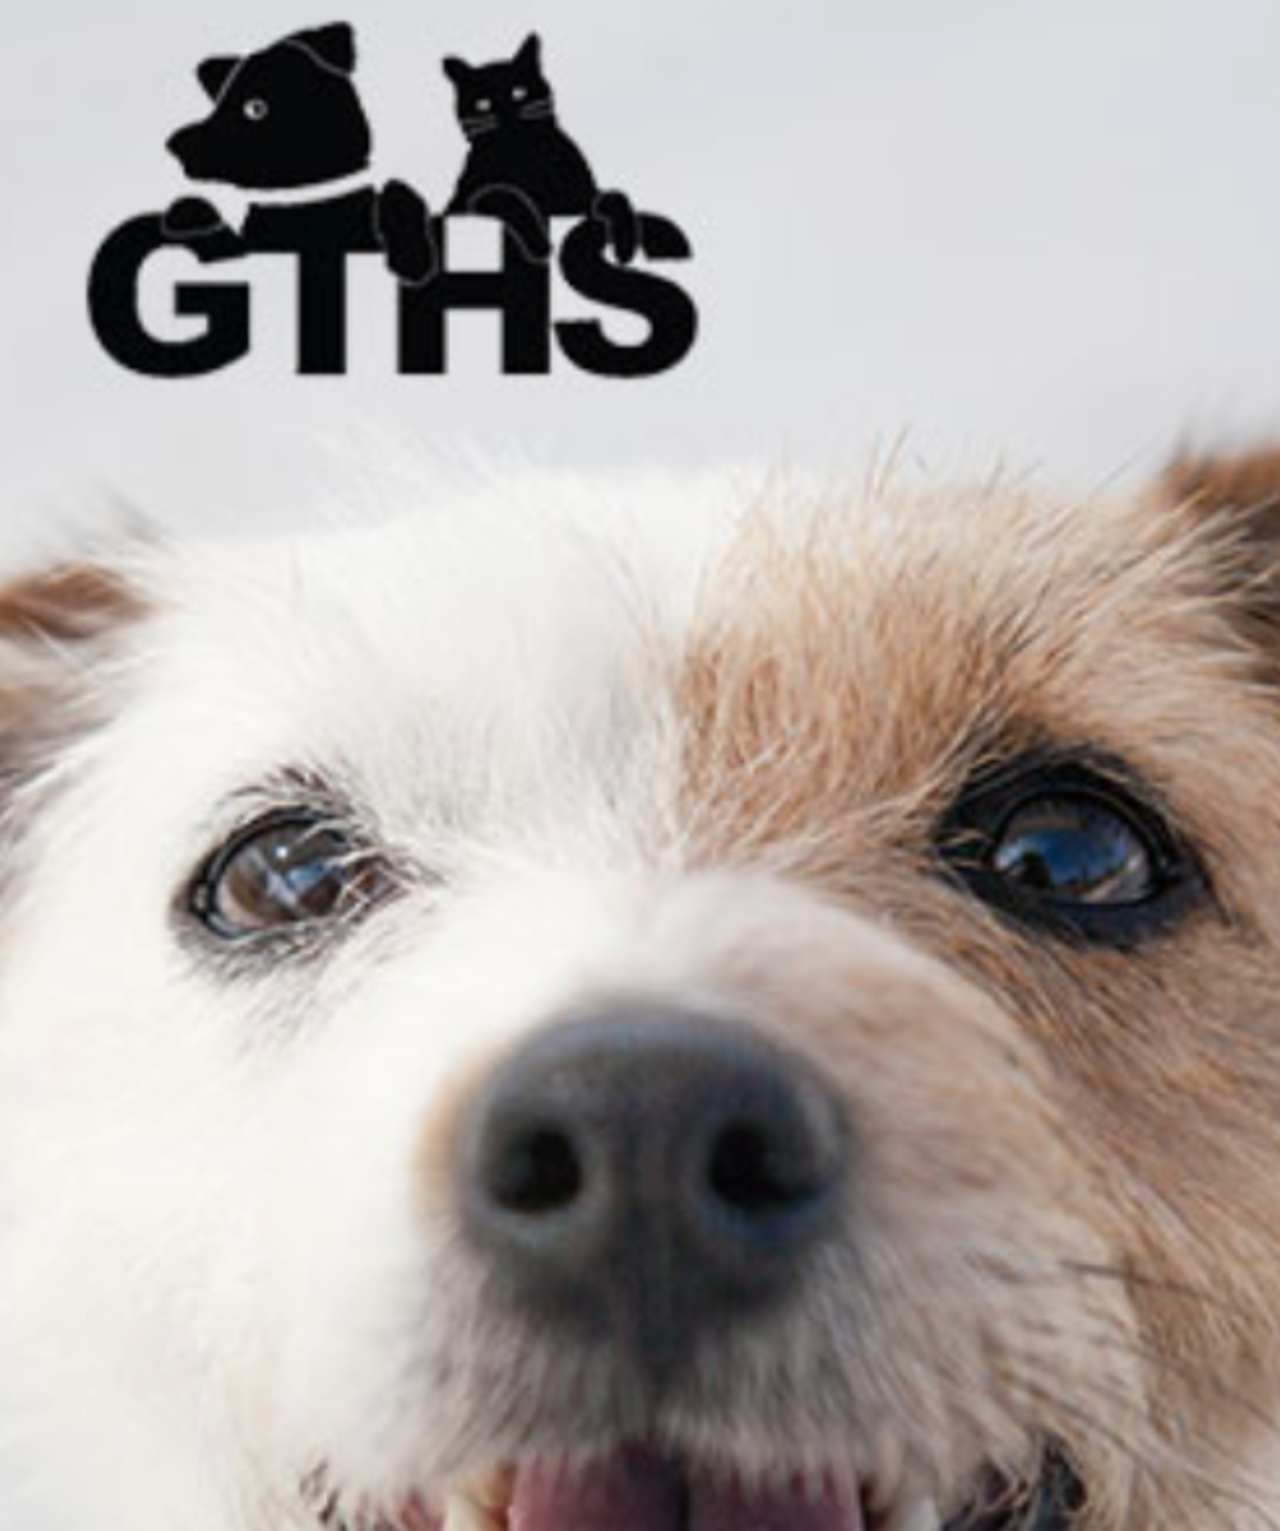 Georgian Triangle Humane Society - Pets and Animals - Essential Business in Collingwood ON